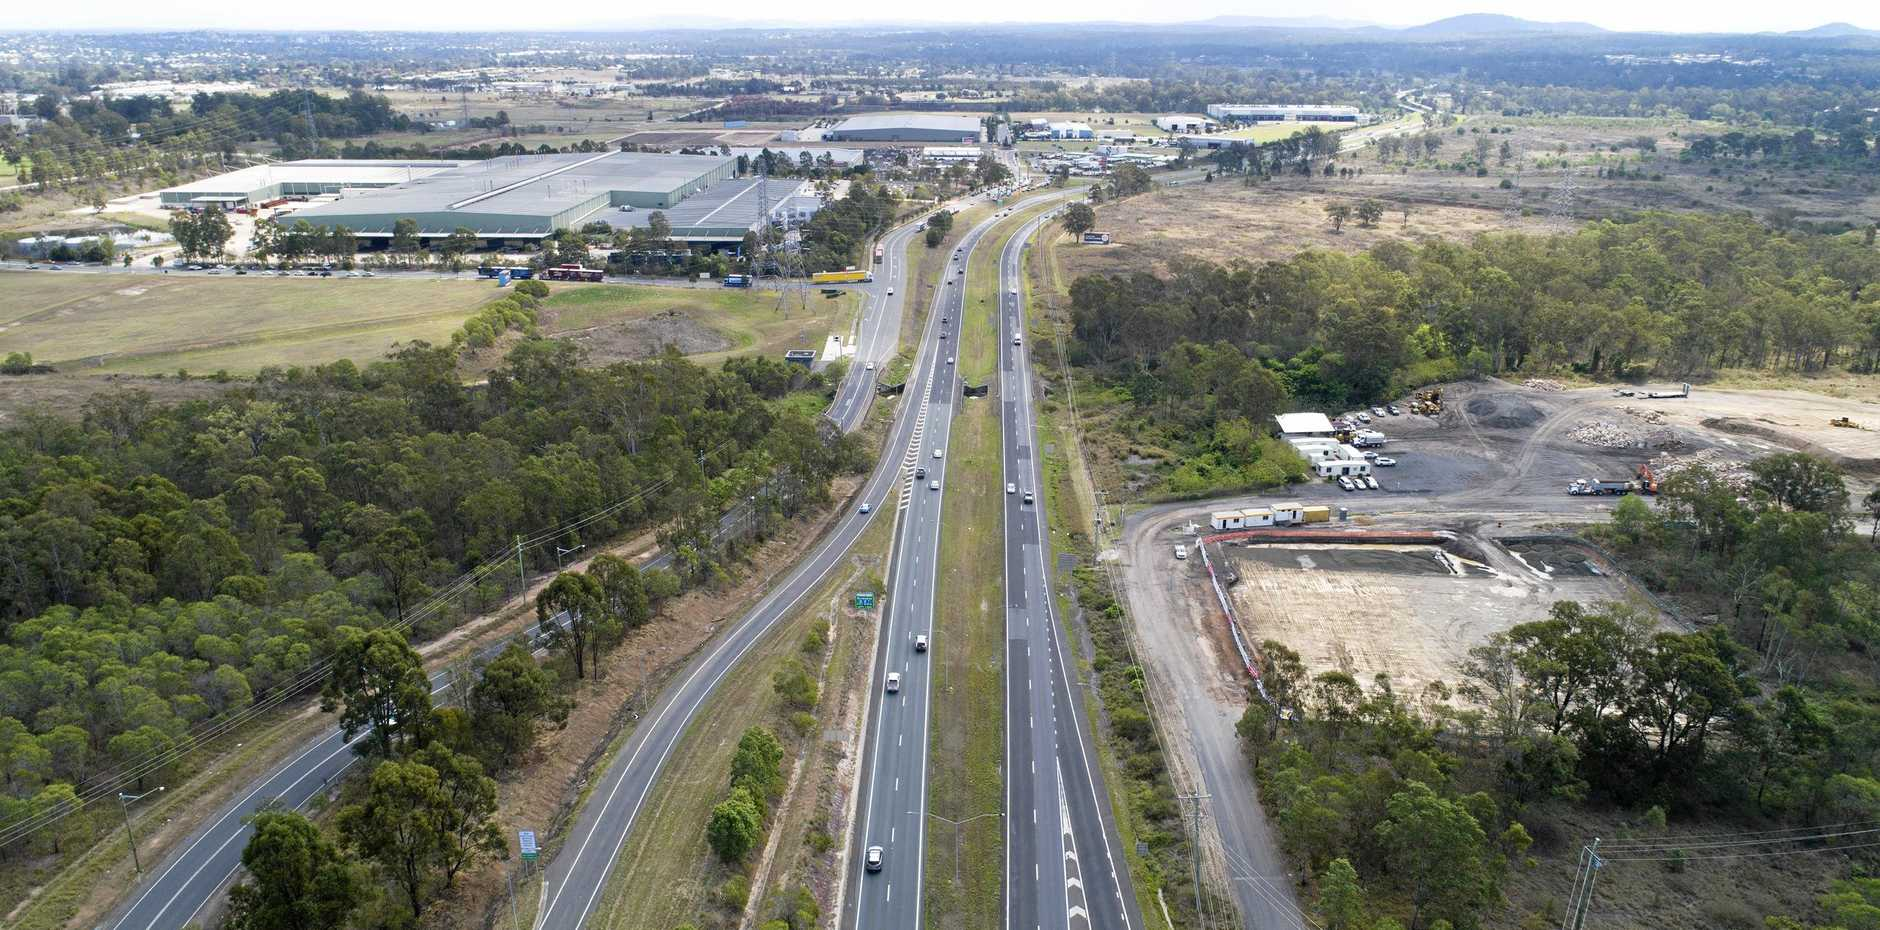 The Warrego Highway has been reopened after a horror crash last night which left a motorcyclist dead.